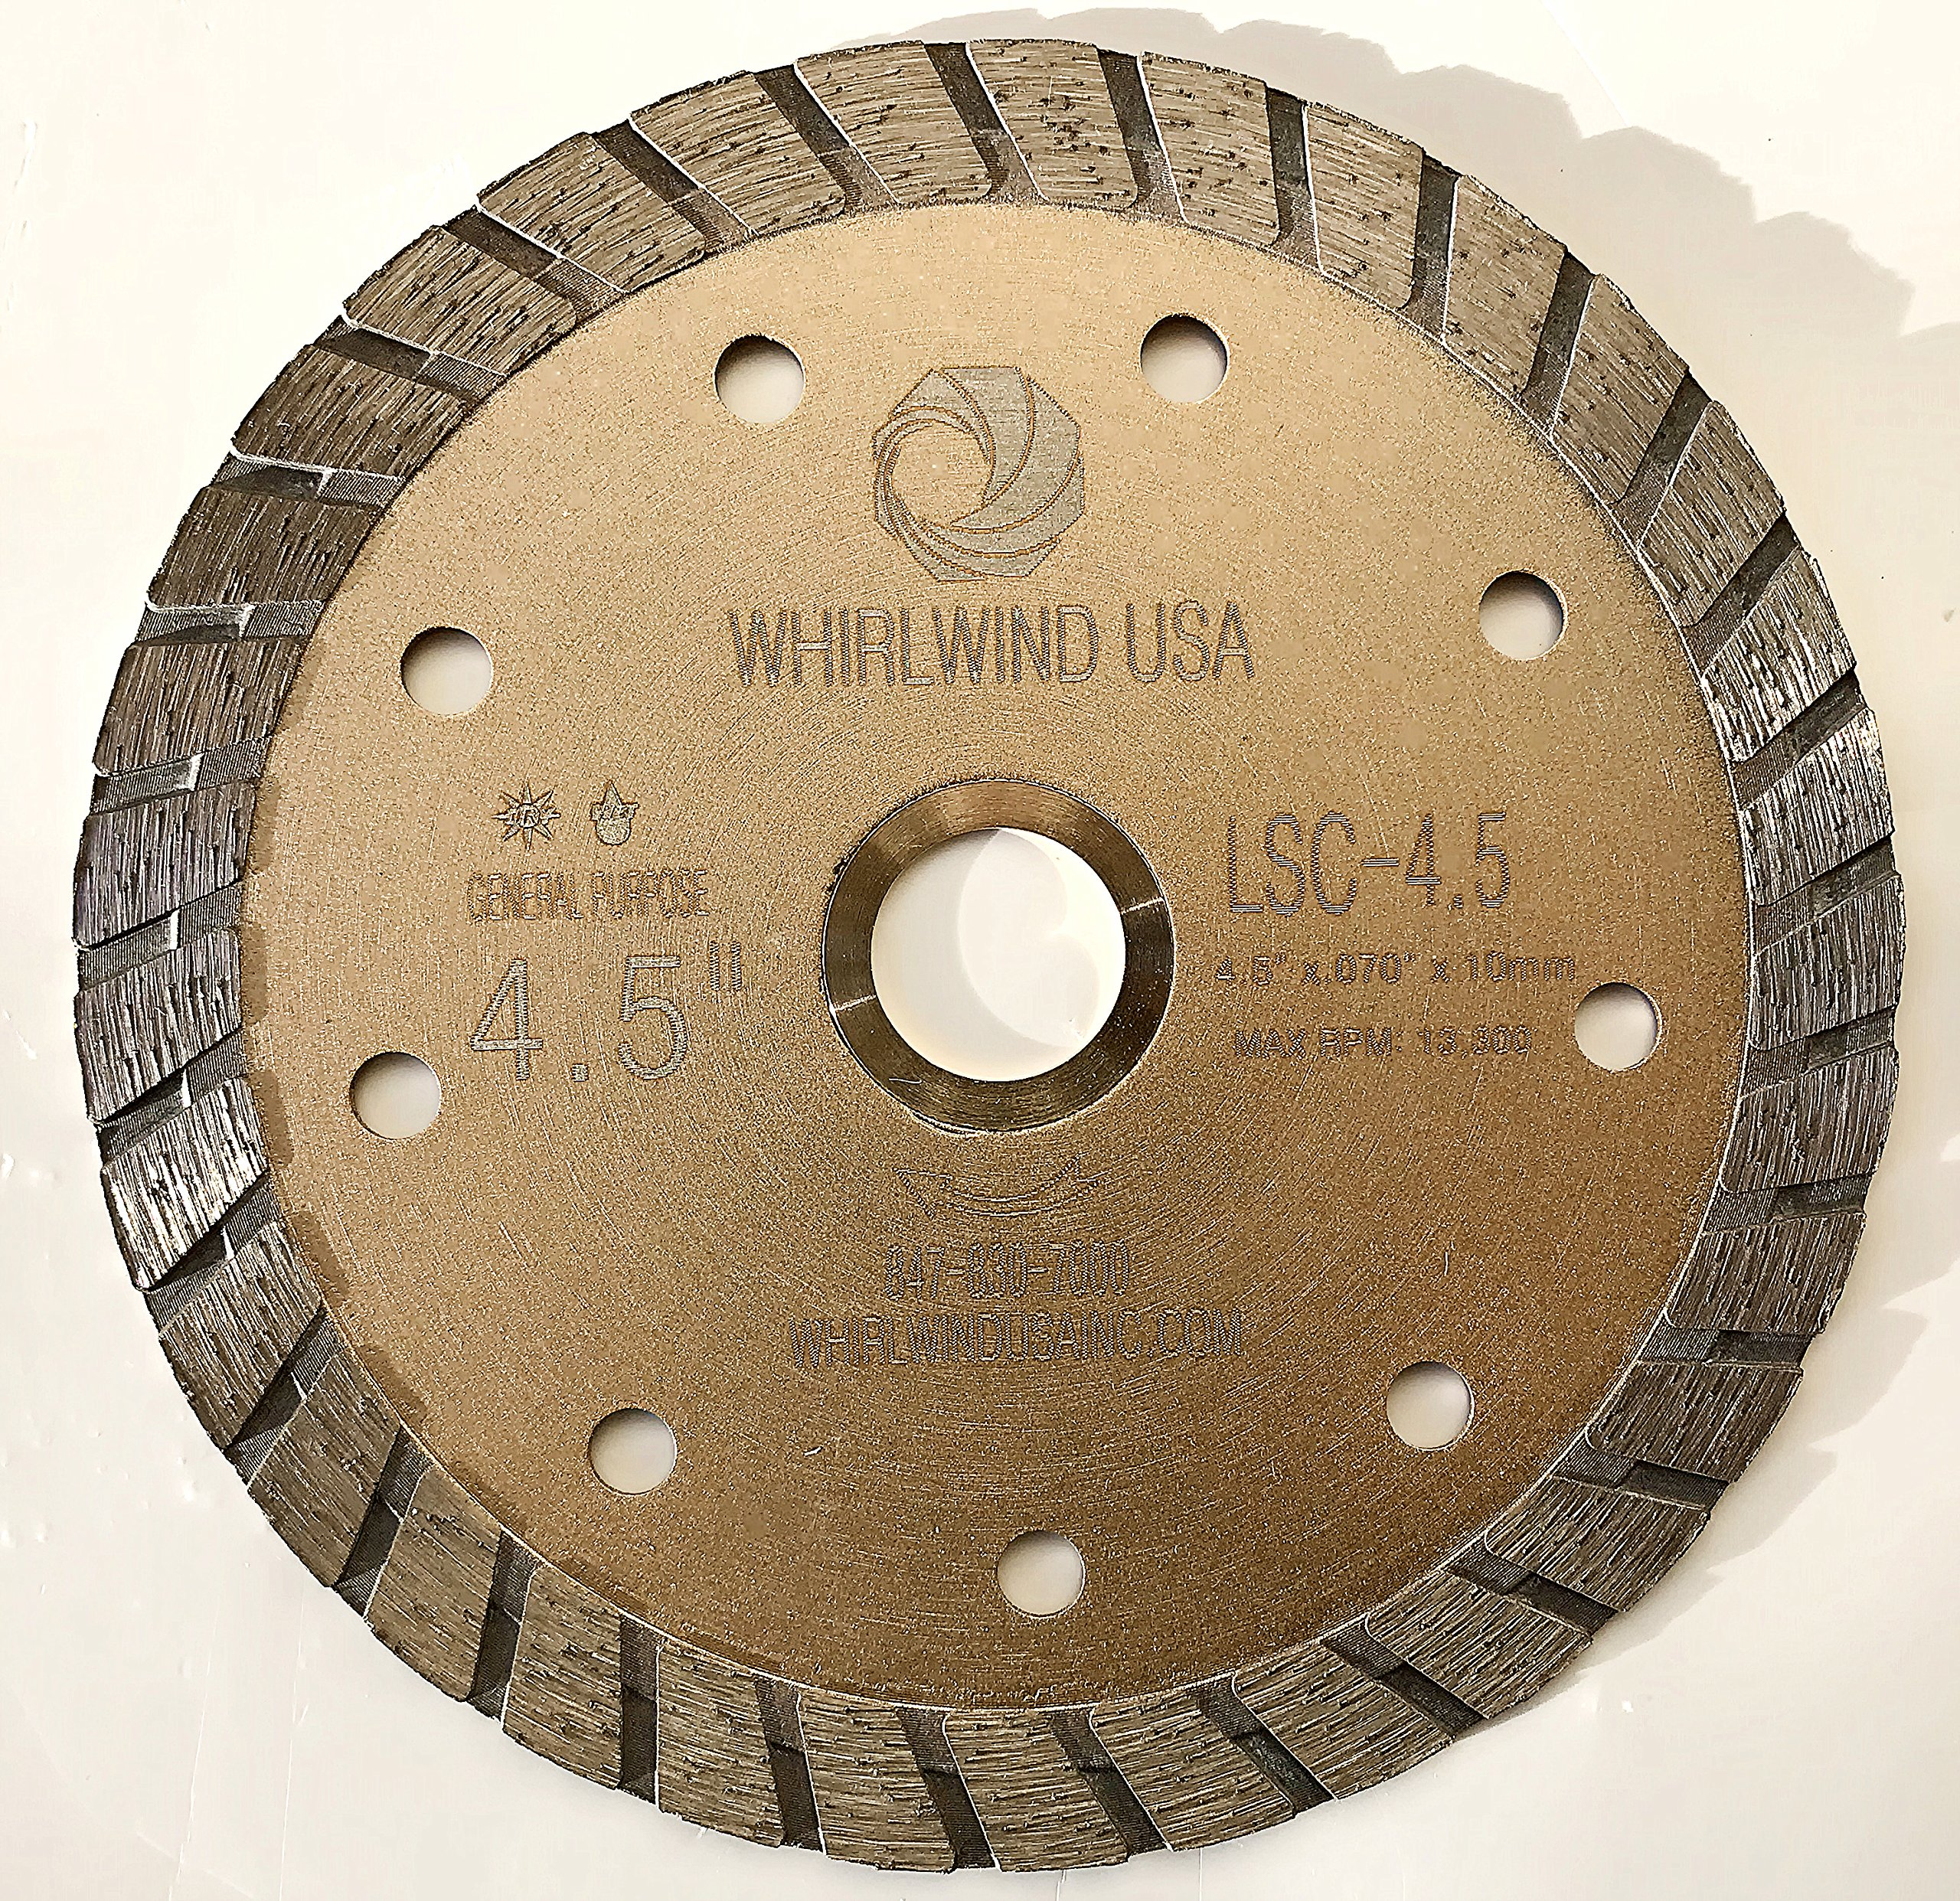 Whirlwind USA LSC 4 1/2-Inch Dry or Wet Cutting General Purpose Continuous Turbo Power Saw Diamond Blades for Concrete, Masonry, Stone (Factory Direct Sale) (4.5'')